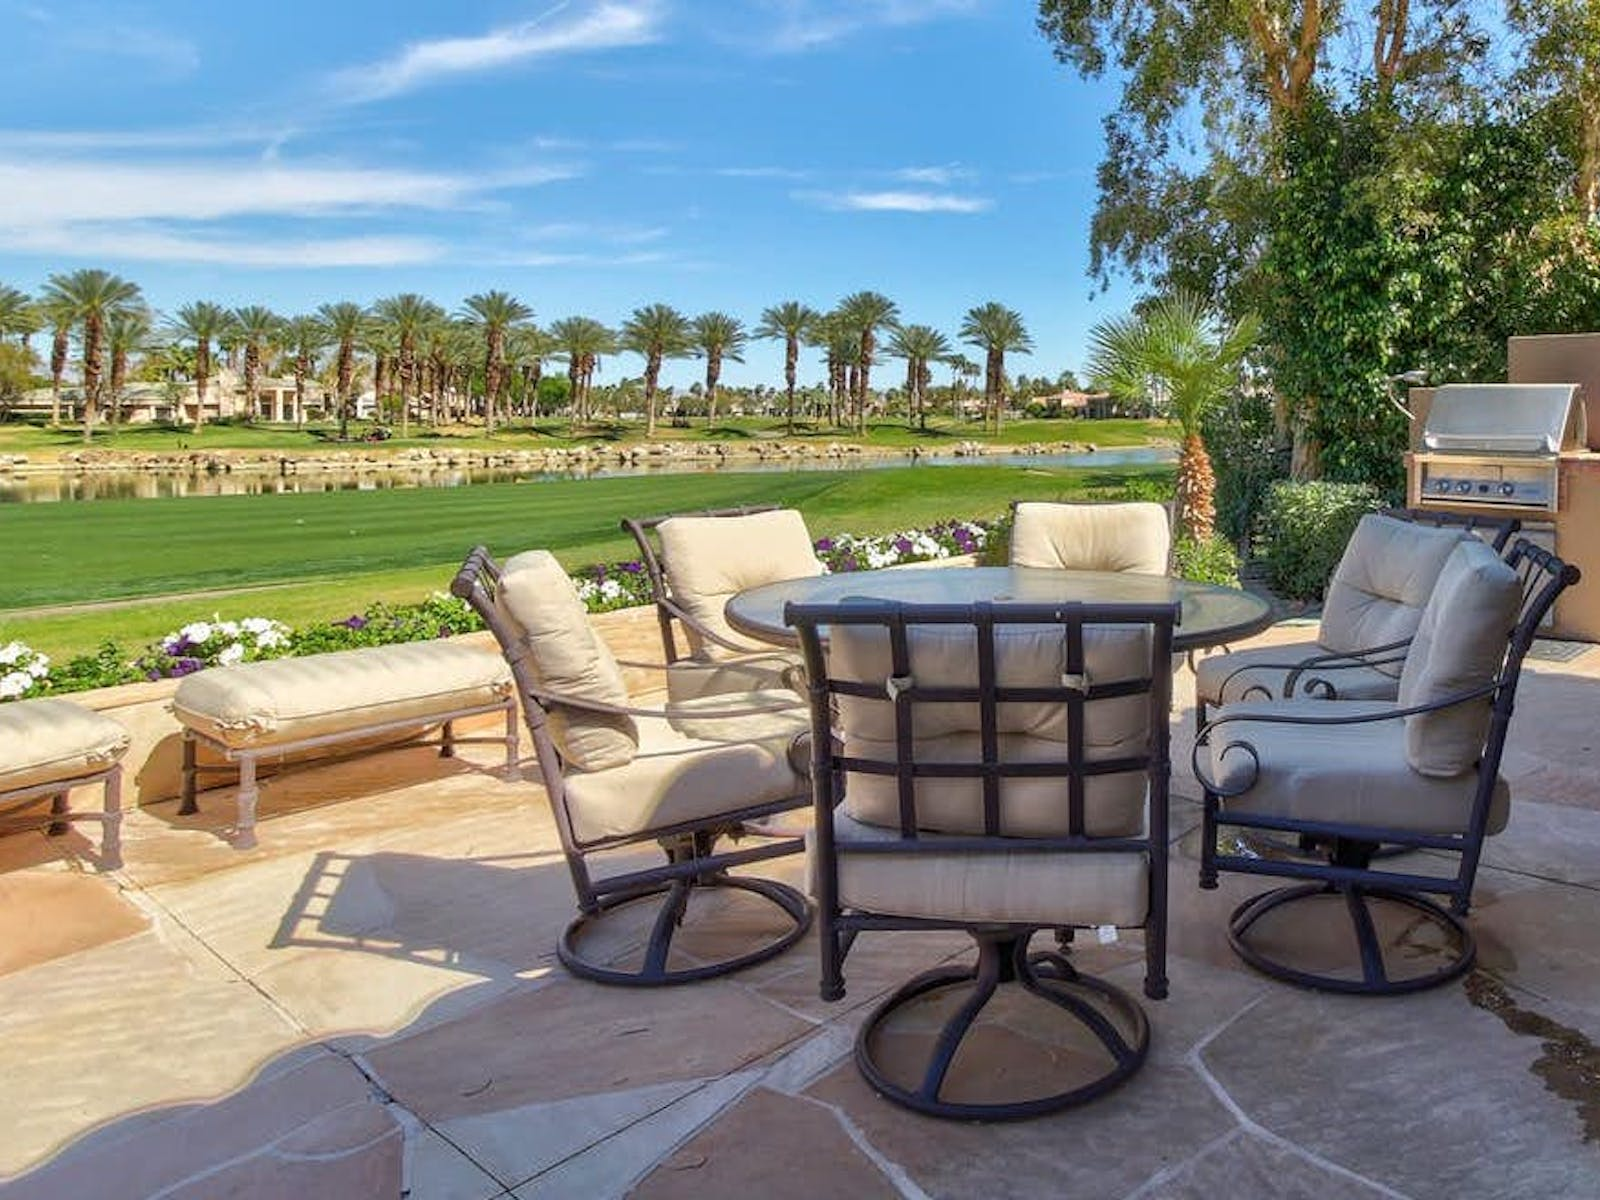 Patio of vacation rental located next to golf course